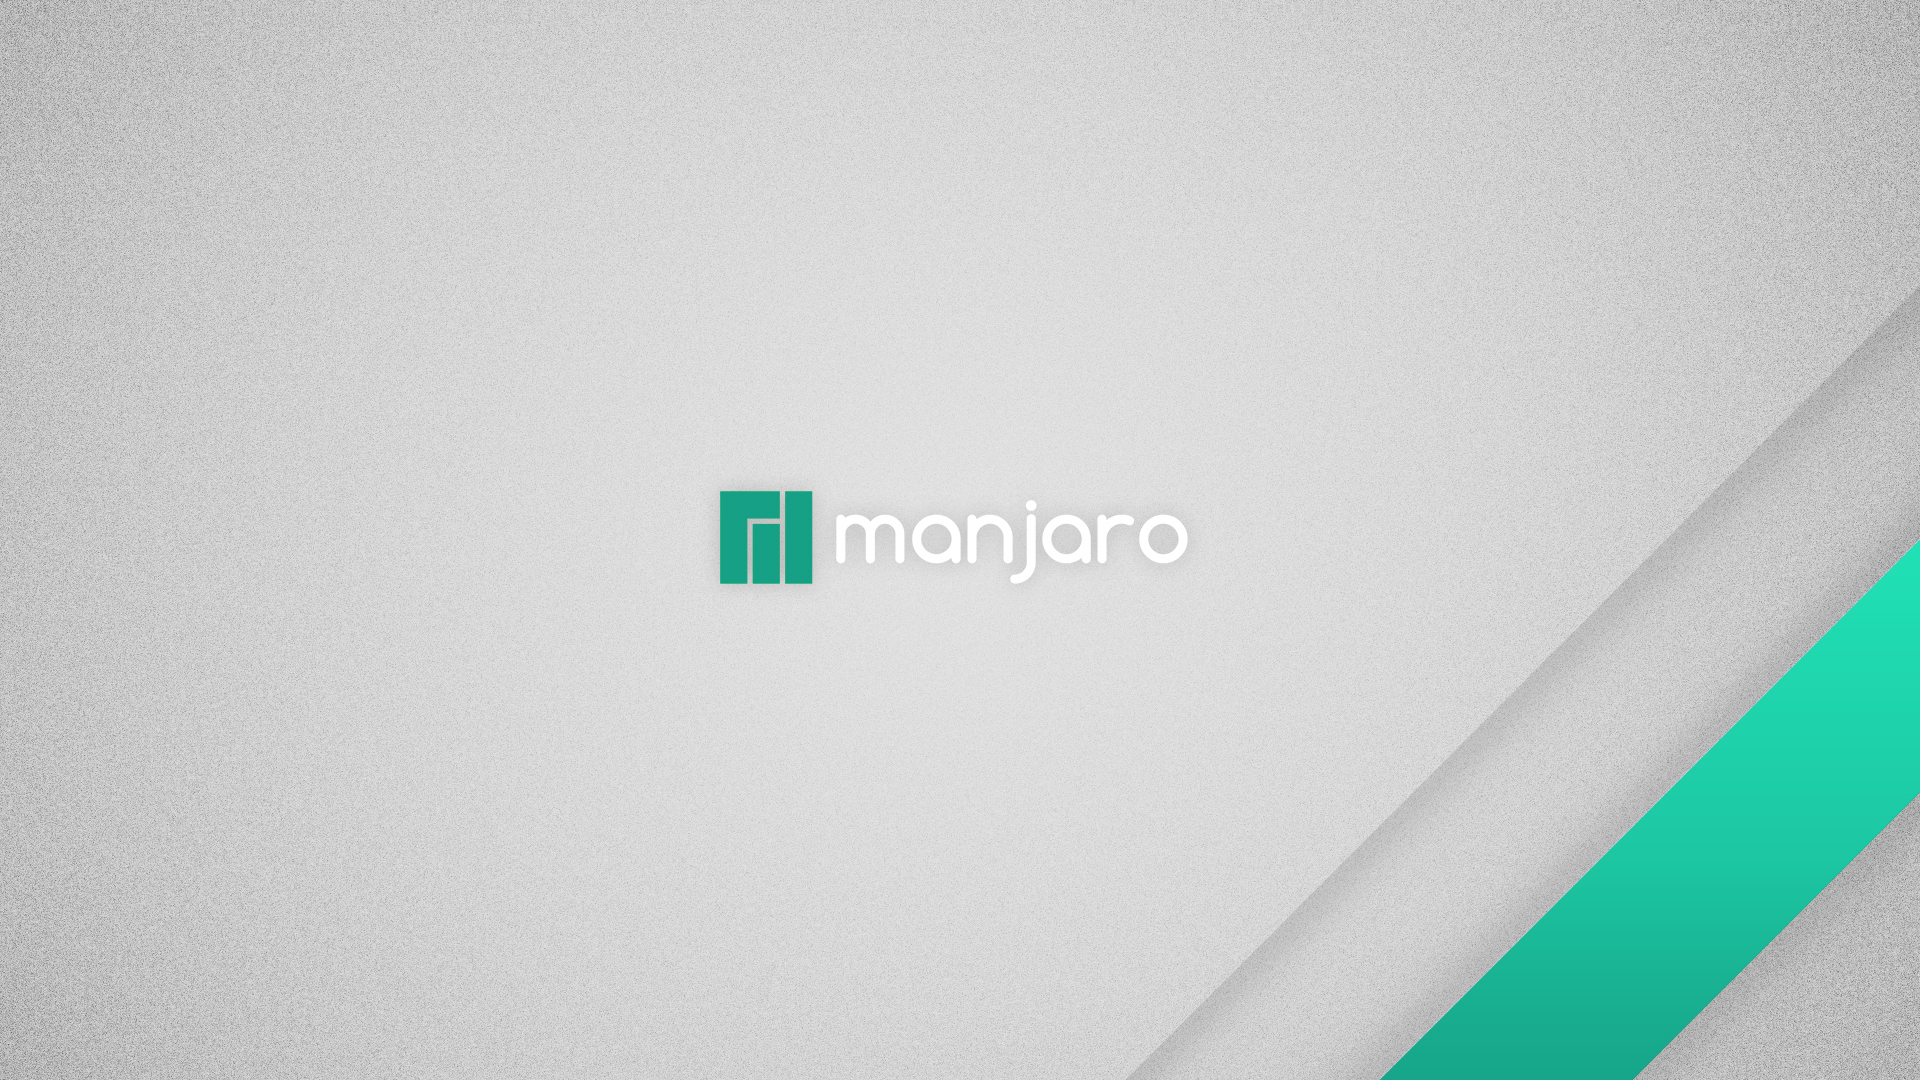 Oen of the default Manjaro wallpapers.